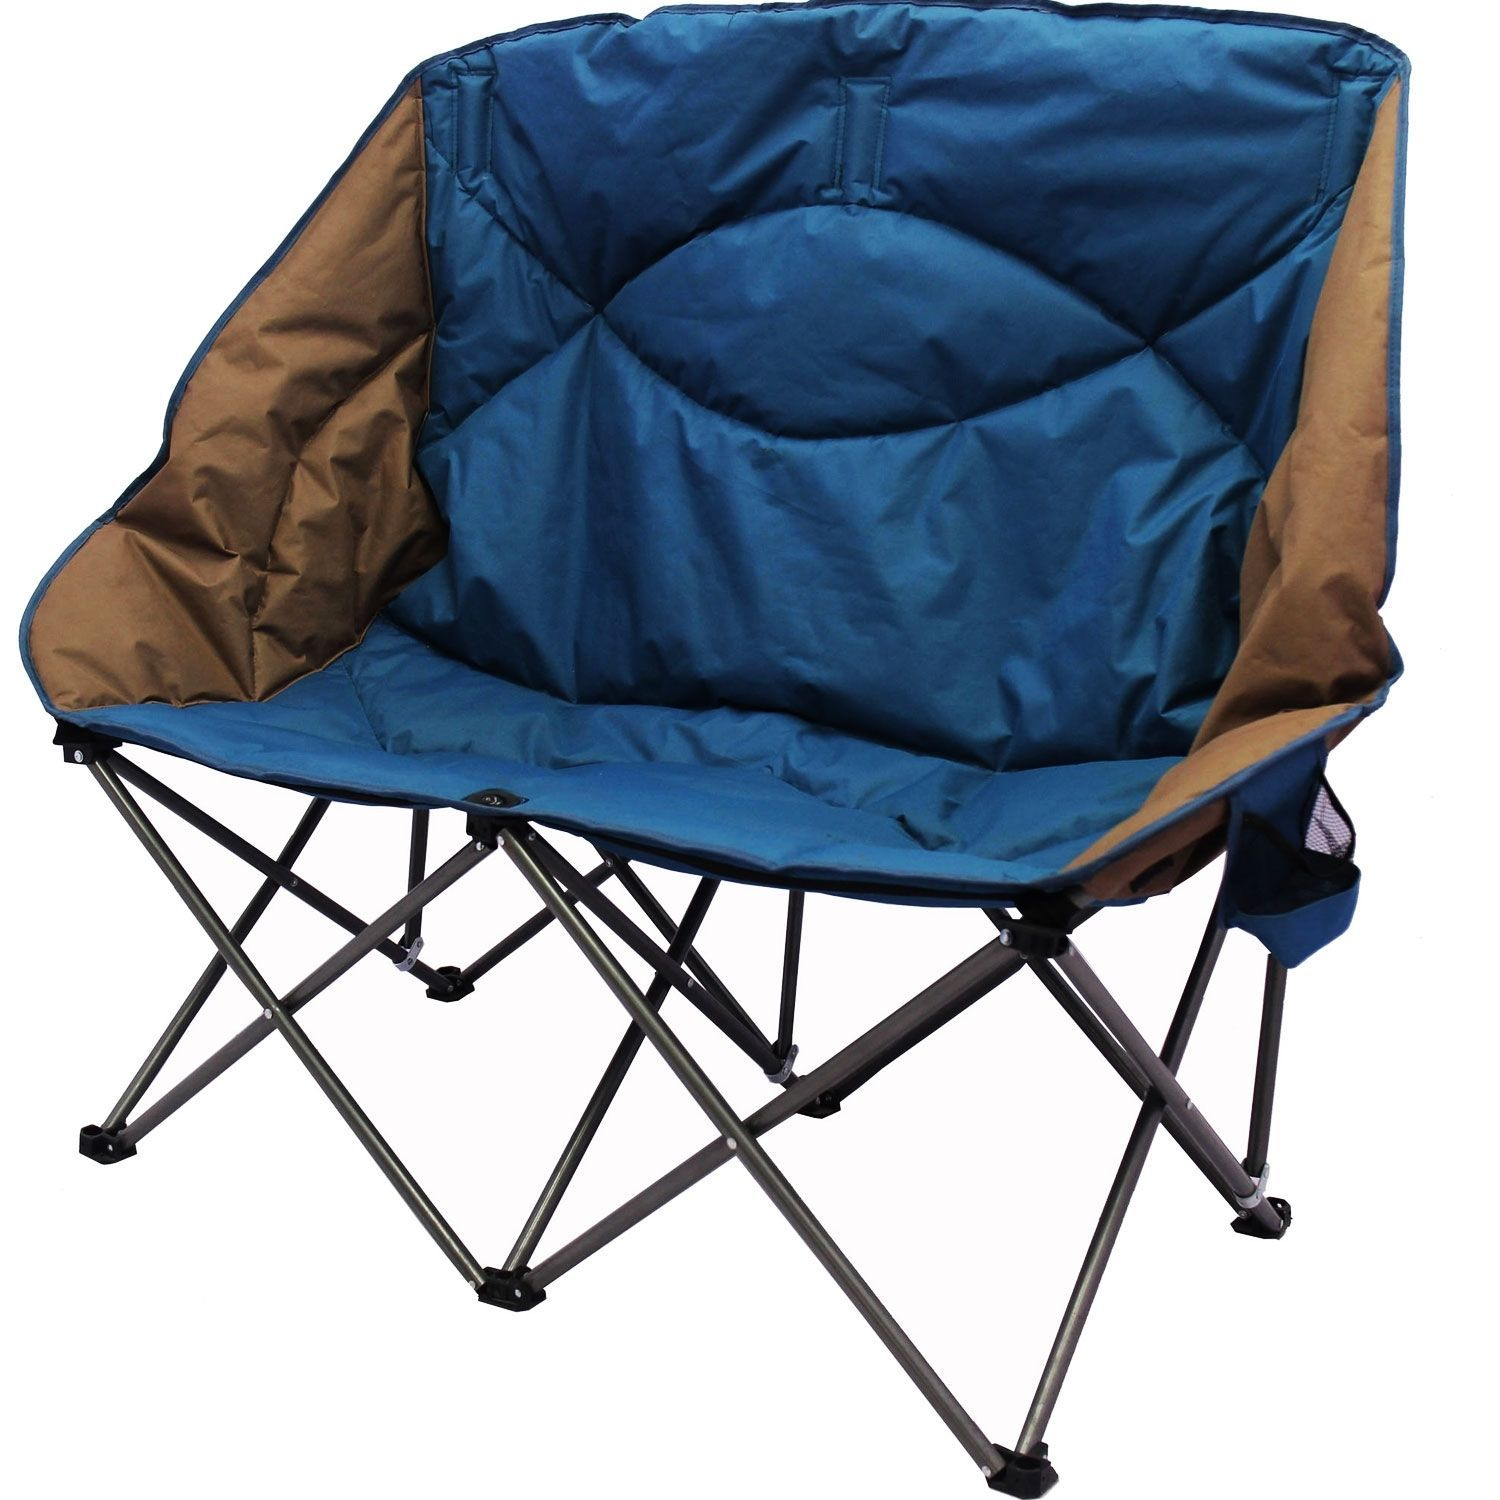 Soft Folding Chairs Lovely Soft Folding Chairs Rtty1 Rtty1